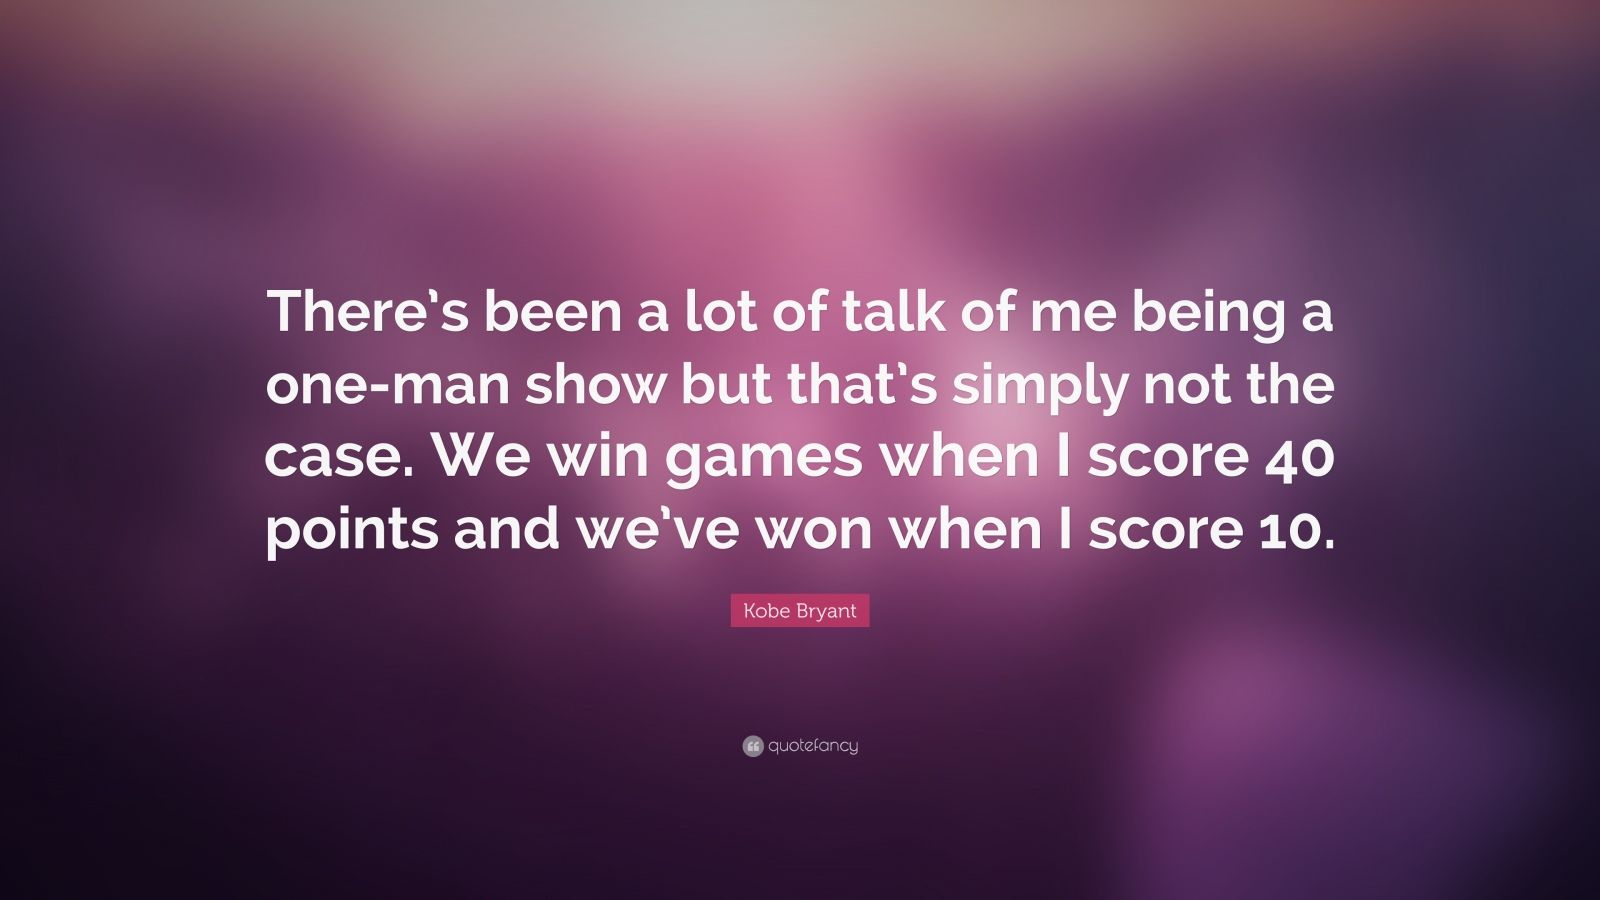 "Kobe Bryant Quote: ""There's been a lot of talk of me being a one-man show but that's simply not the case. We win games when I score 40 points and we've won when I score 10."""